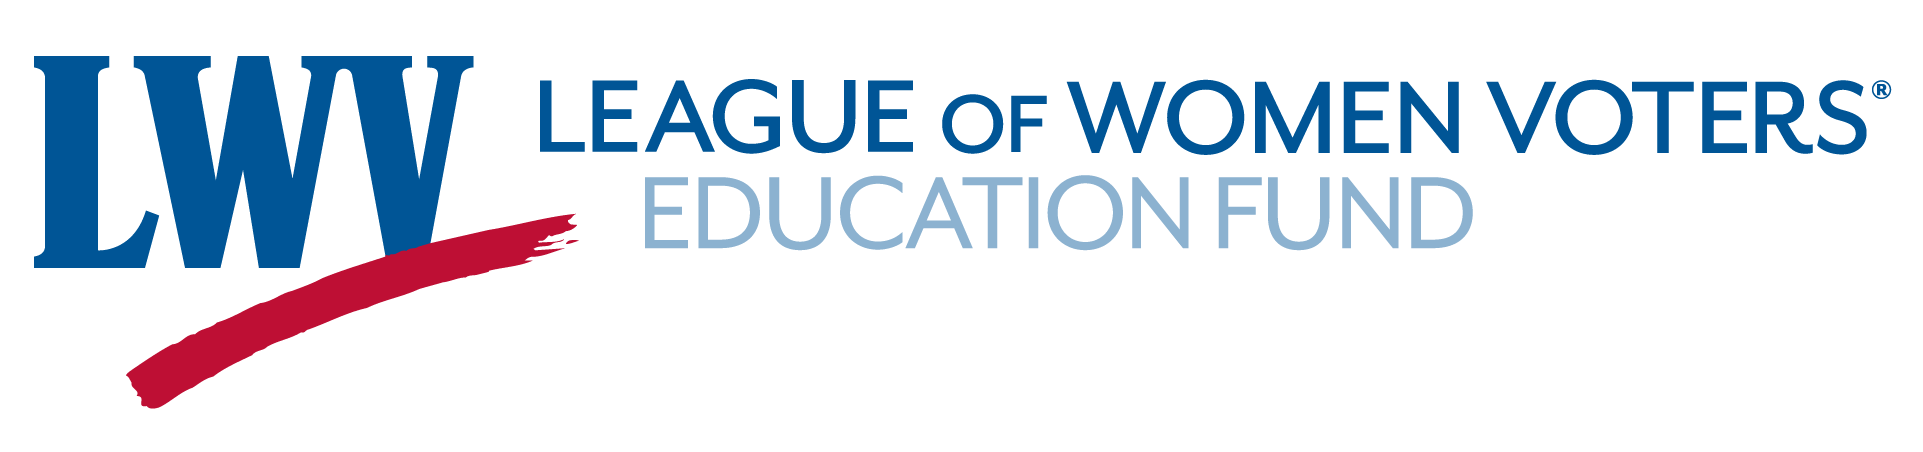 LWV - Education Fund logo